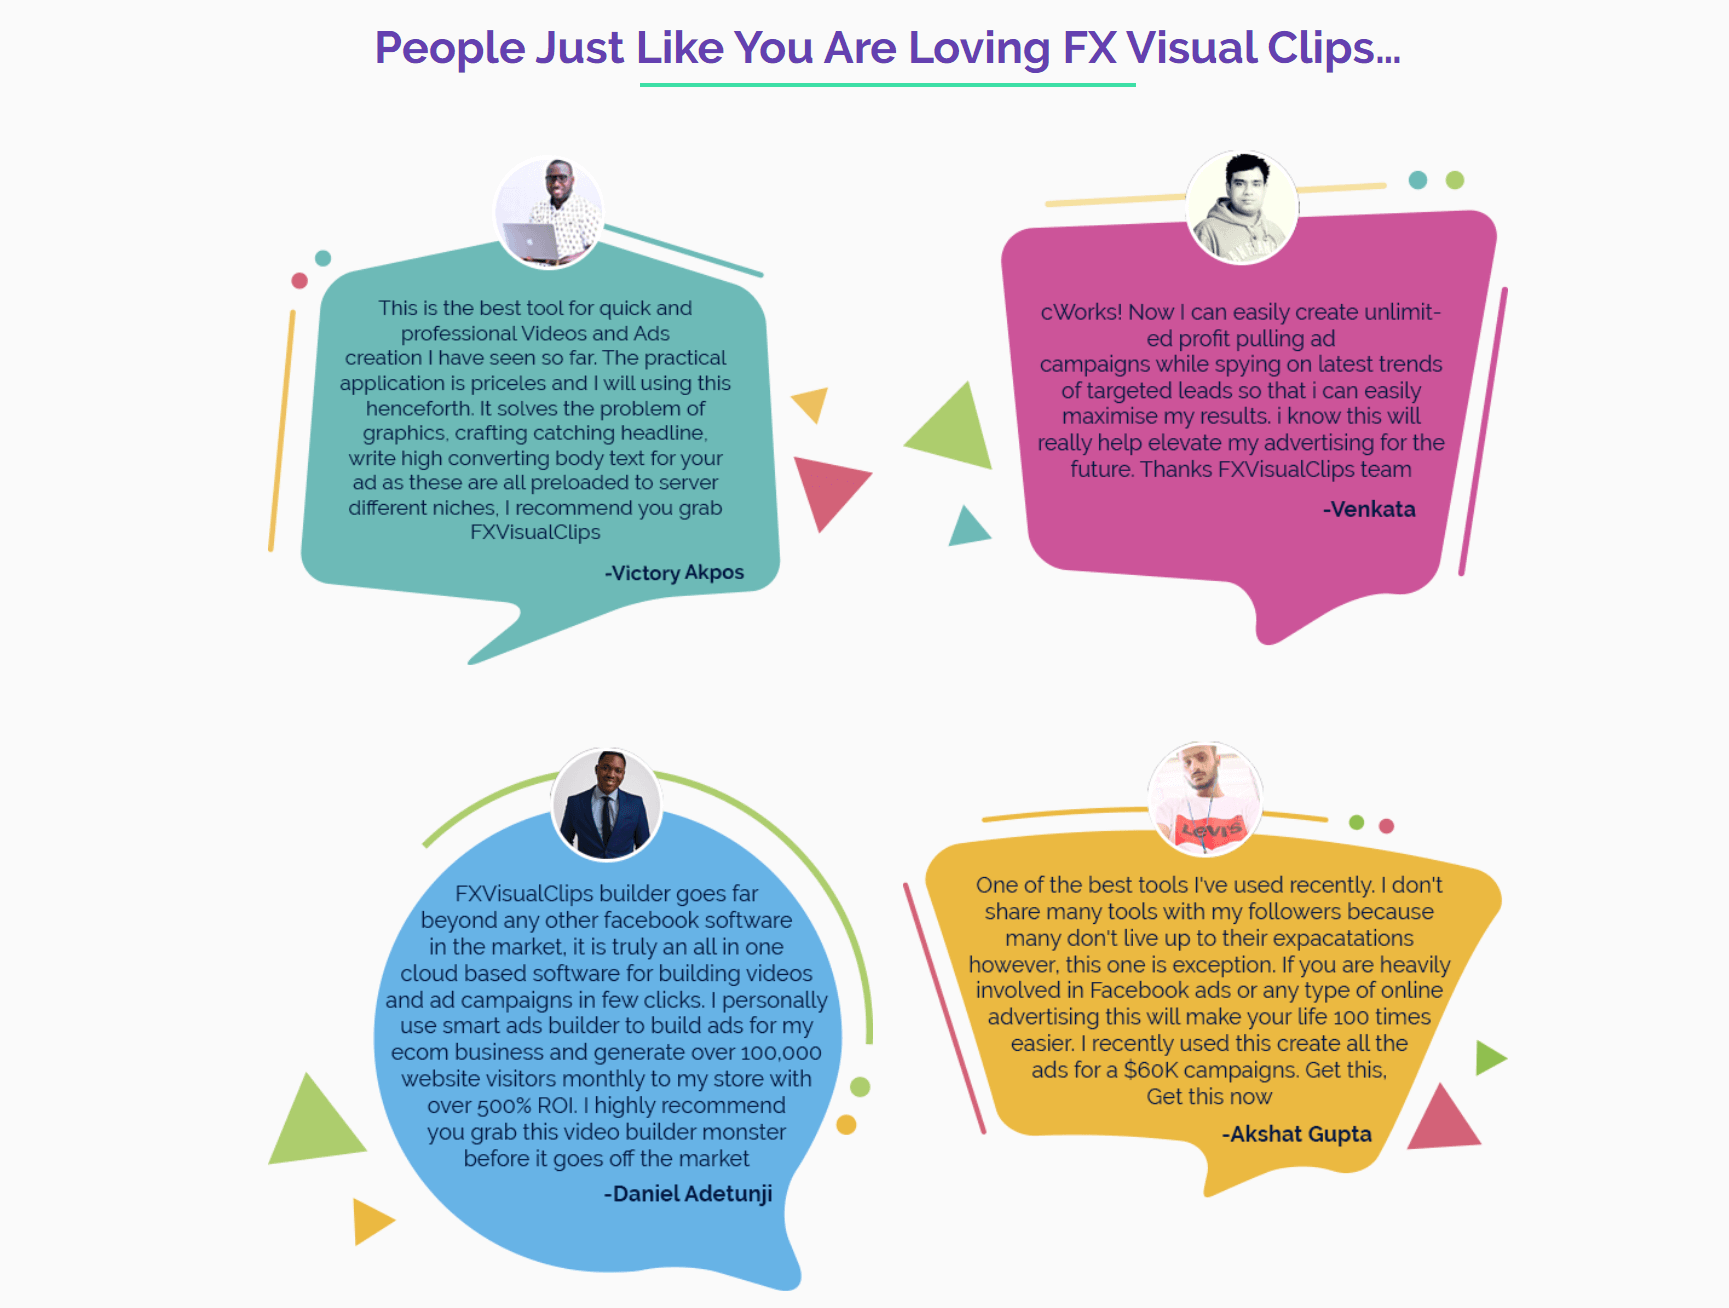 FX-Visual-Clips-Review-Comment-1